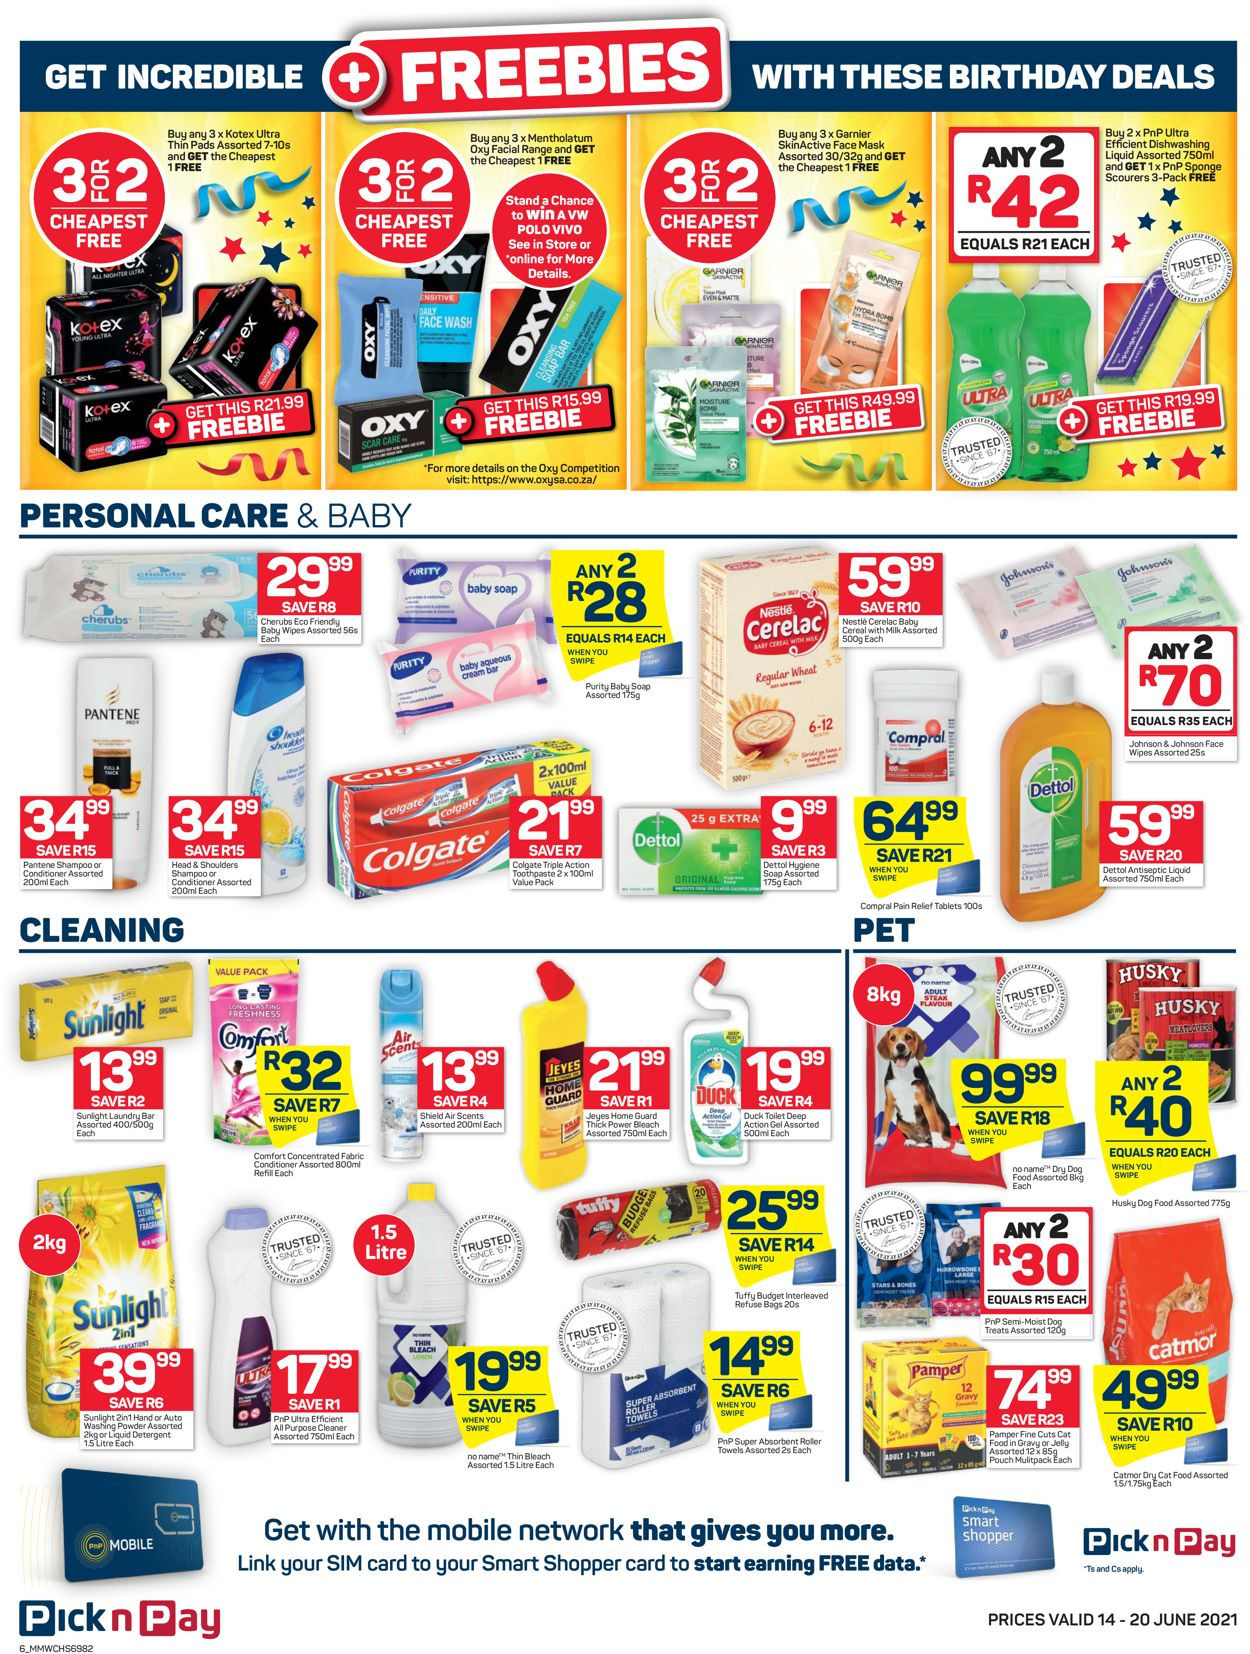 Pick n Pay Catalogue - 2021/06/14-2021/06/20 (Page 6)